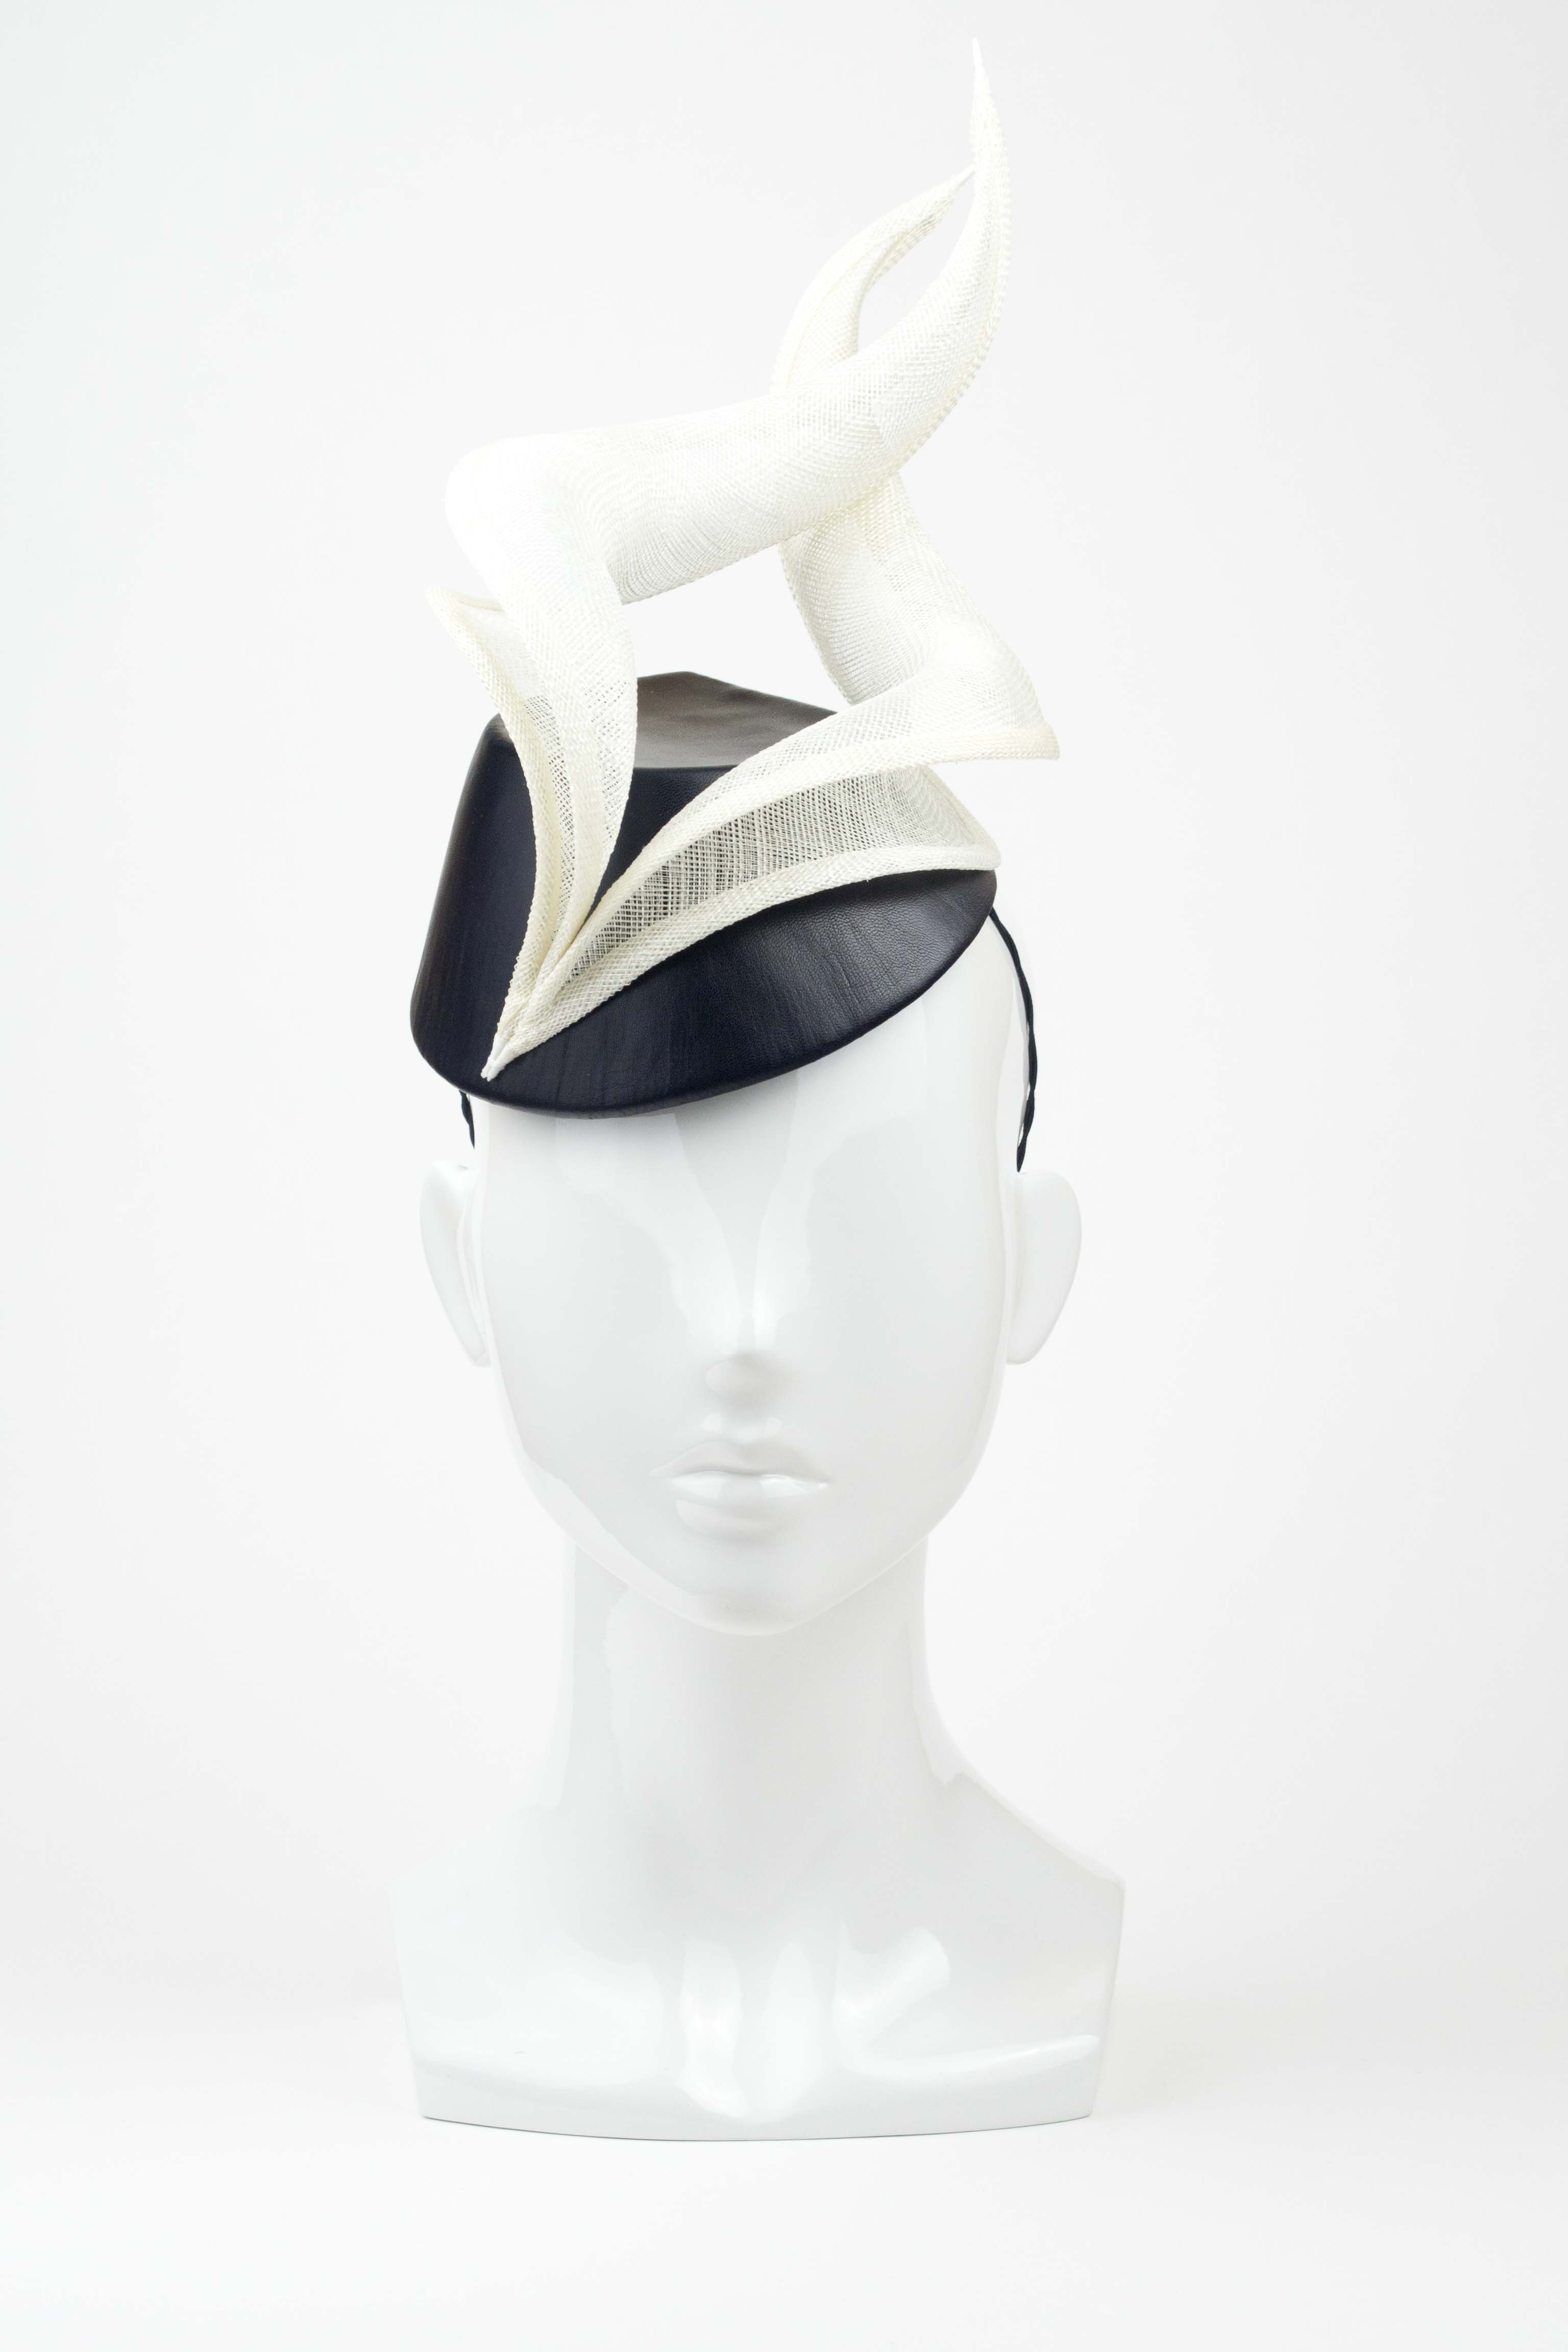 Spring Racing Fashion Trends 2014 - Millinery 0b47aee4631